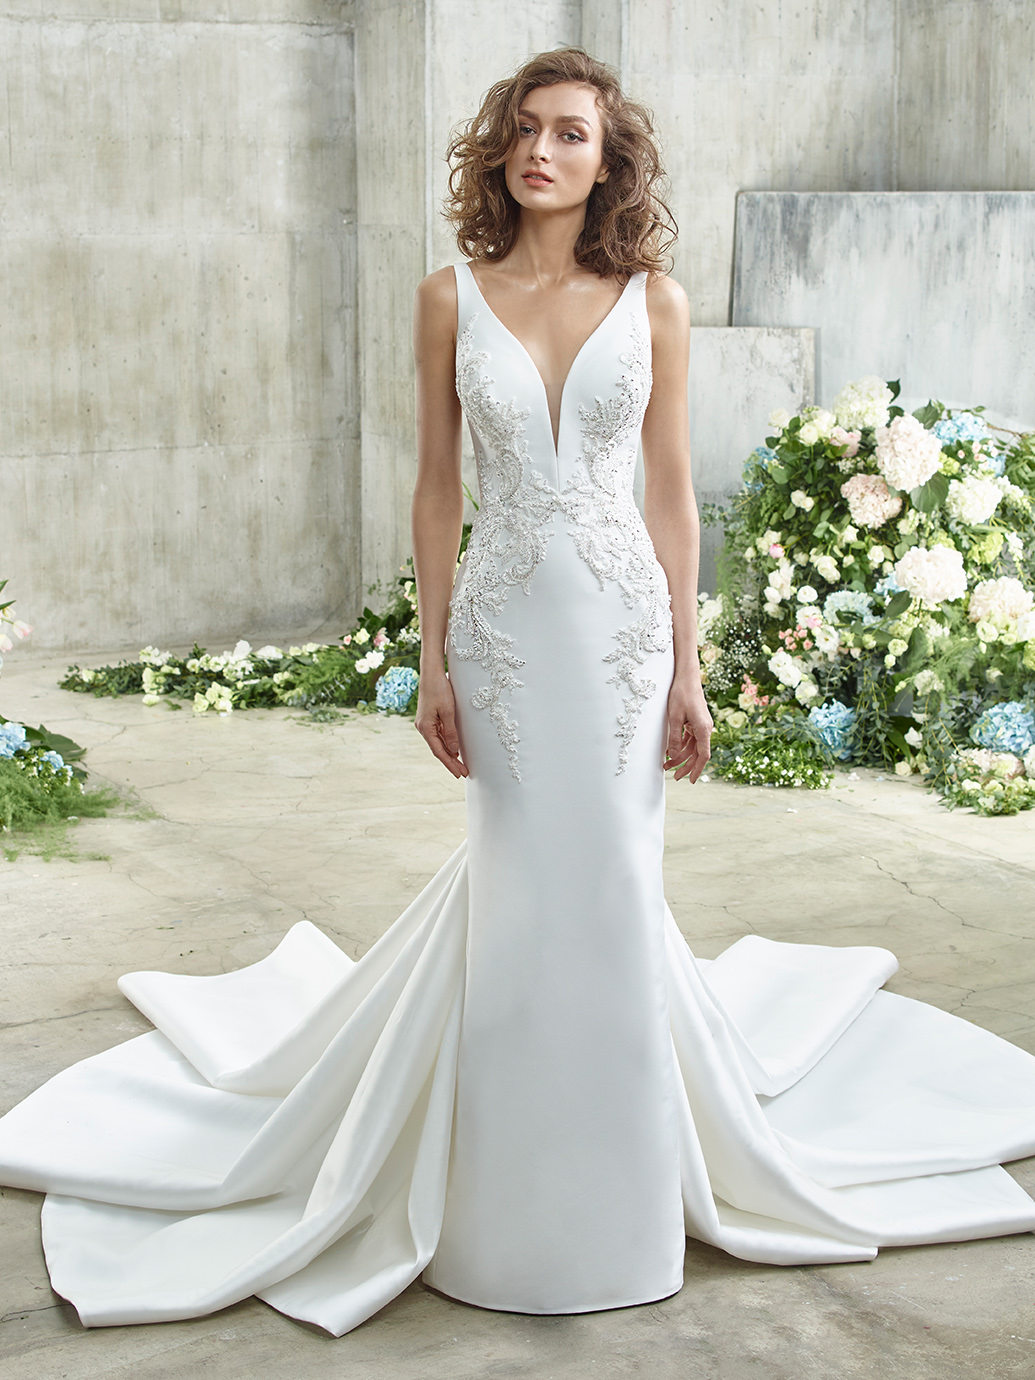 Modern elegance takes on a whole new meaning in Eunice, featuring exquisite, sparkling beaded embroidered lace over sleek, supportive, and ultra-chic mimosa fabric. A plunging V-neckline is subtly modest with an illusion tulle inset piece, while the low, illusion lace V-back is all glitz and glam as it trickles down into a gorgeously dramatic mermaid skirt.